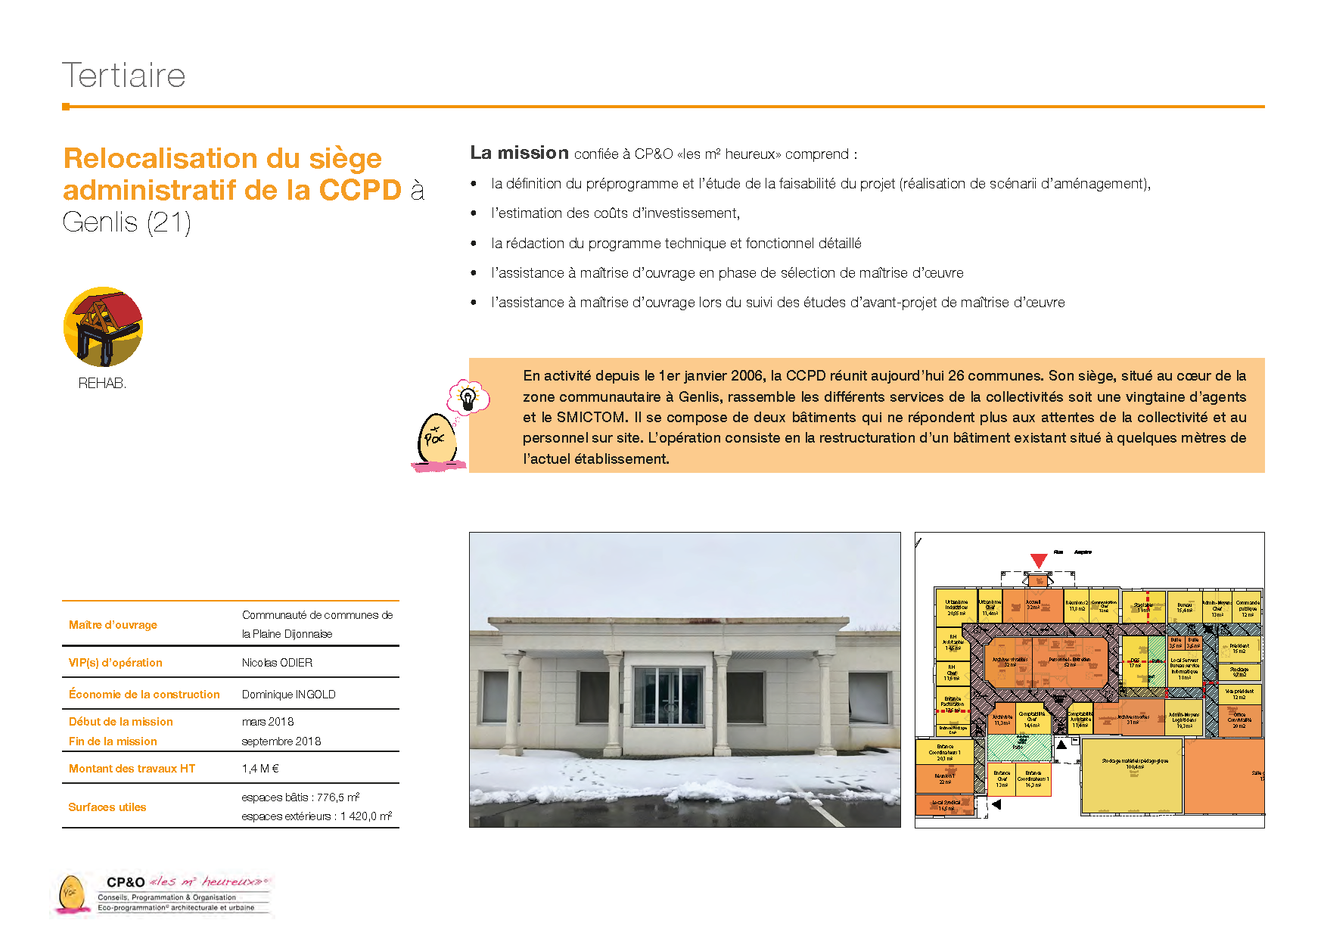 tertiaire_Page_07.png